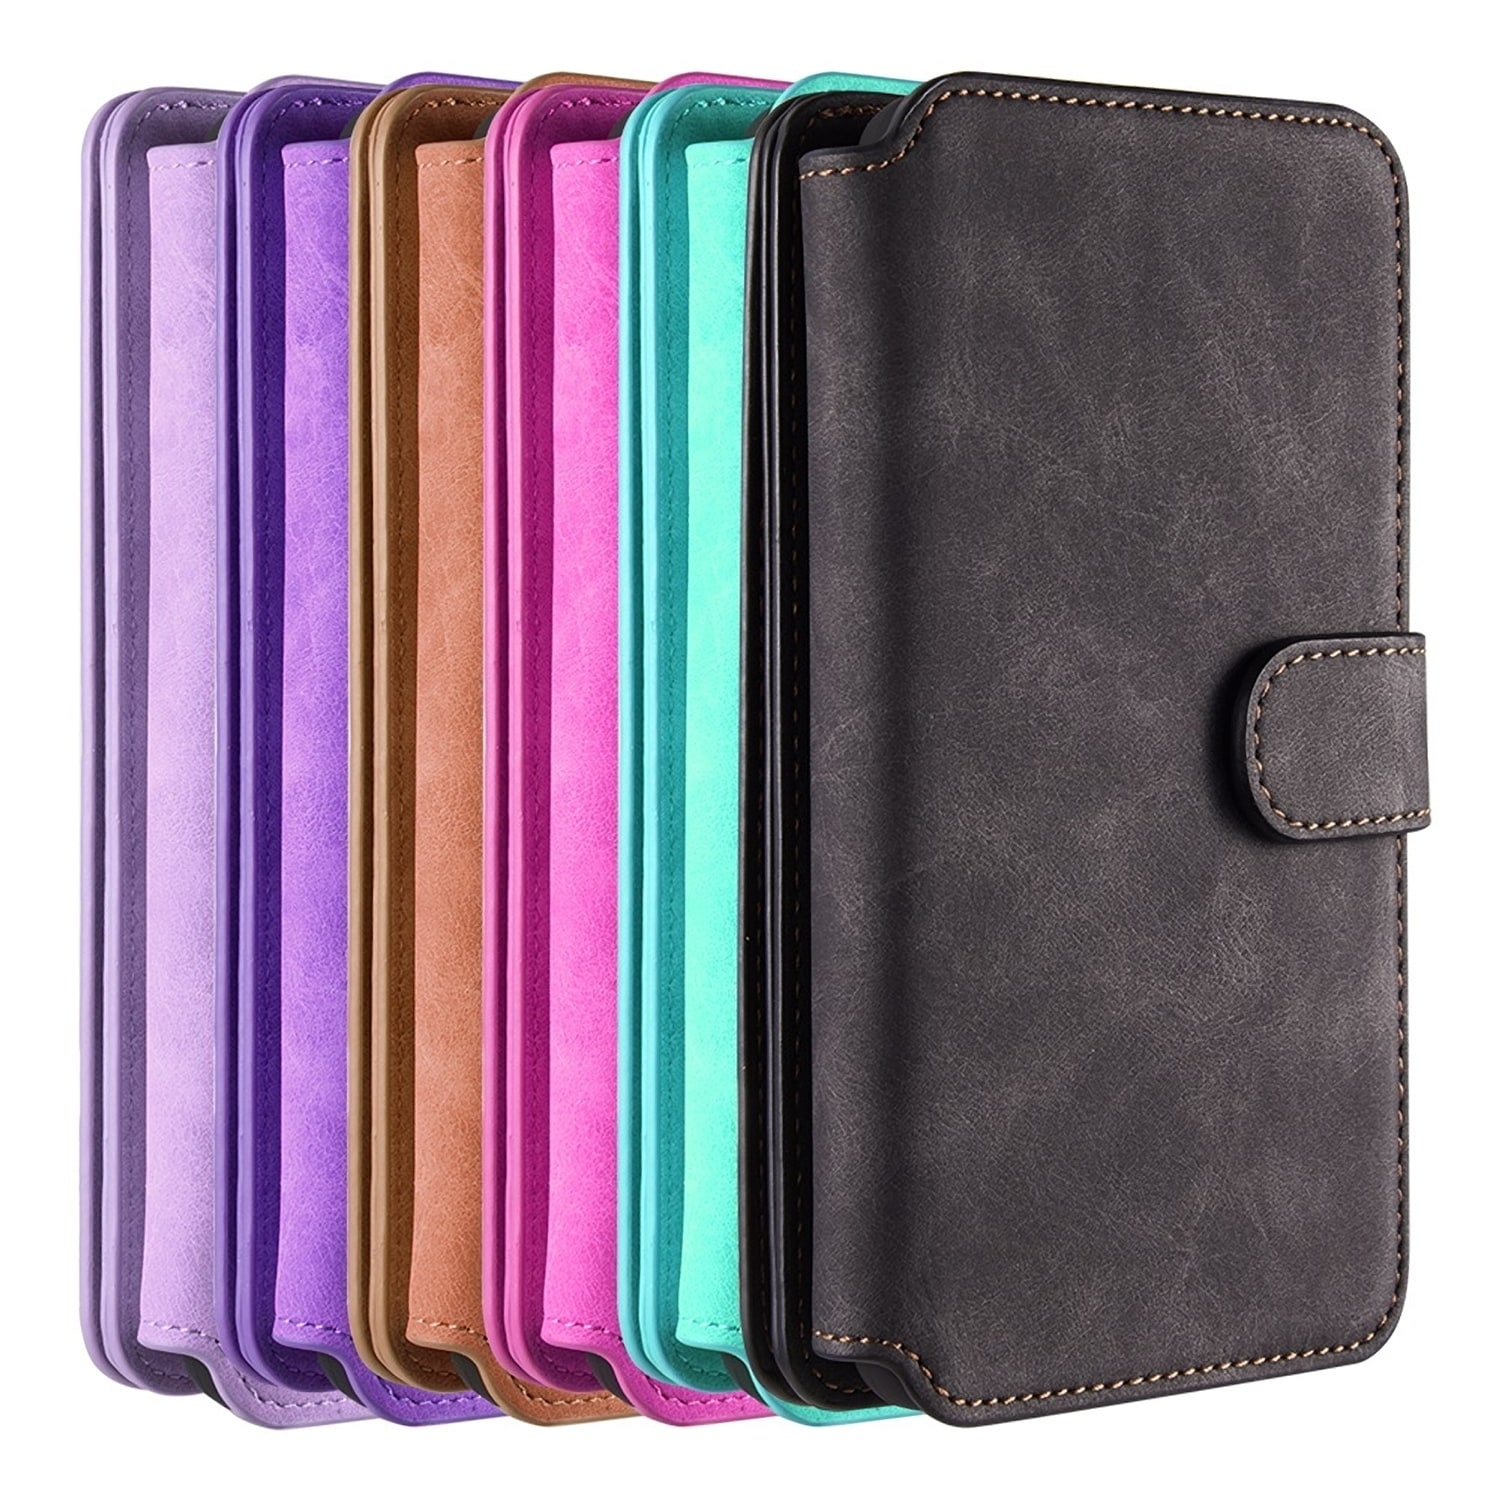 separation shoes 5c091 b4432 Samsung Galaxy S9 Luxury Coach Series Flip Wallet Case